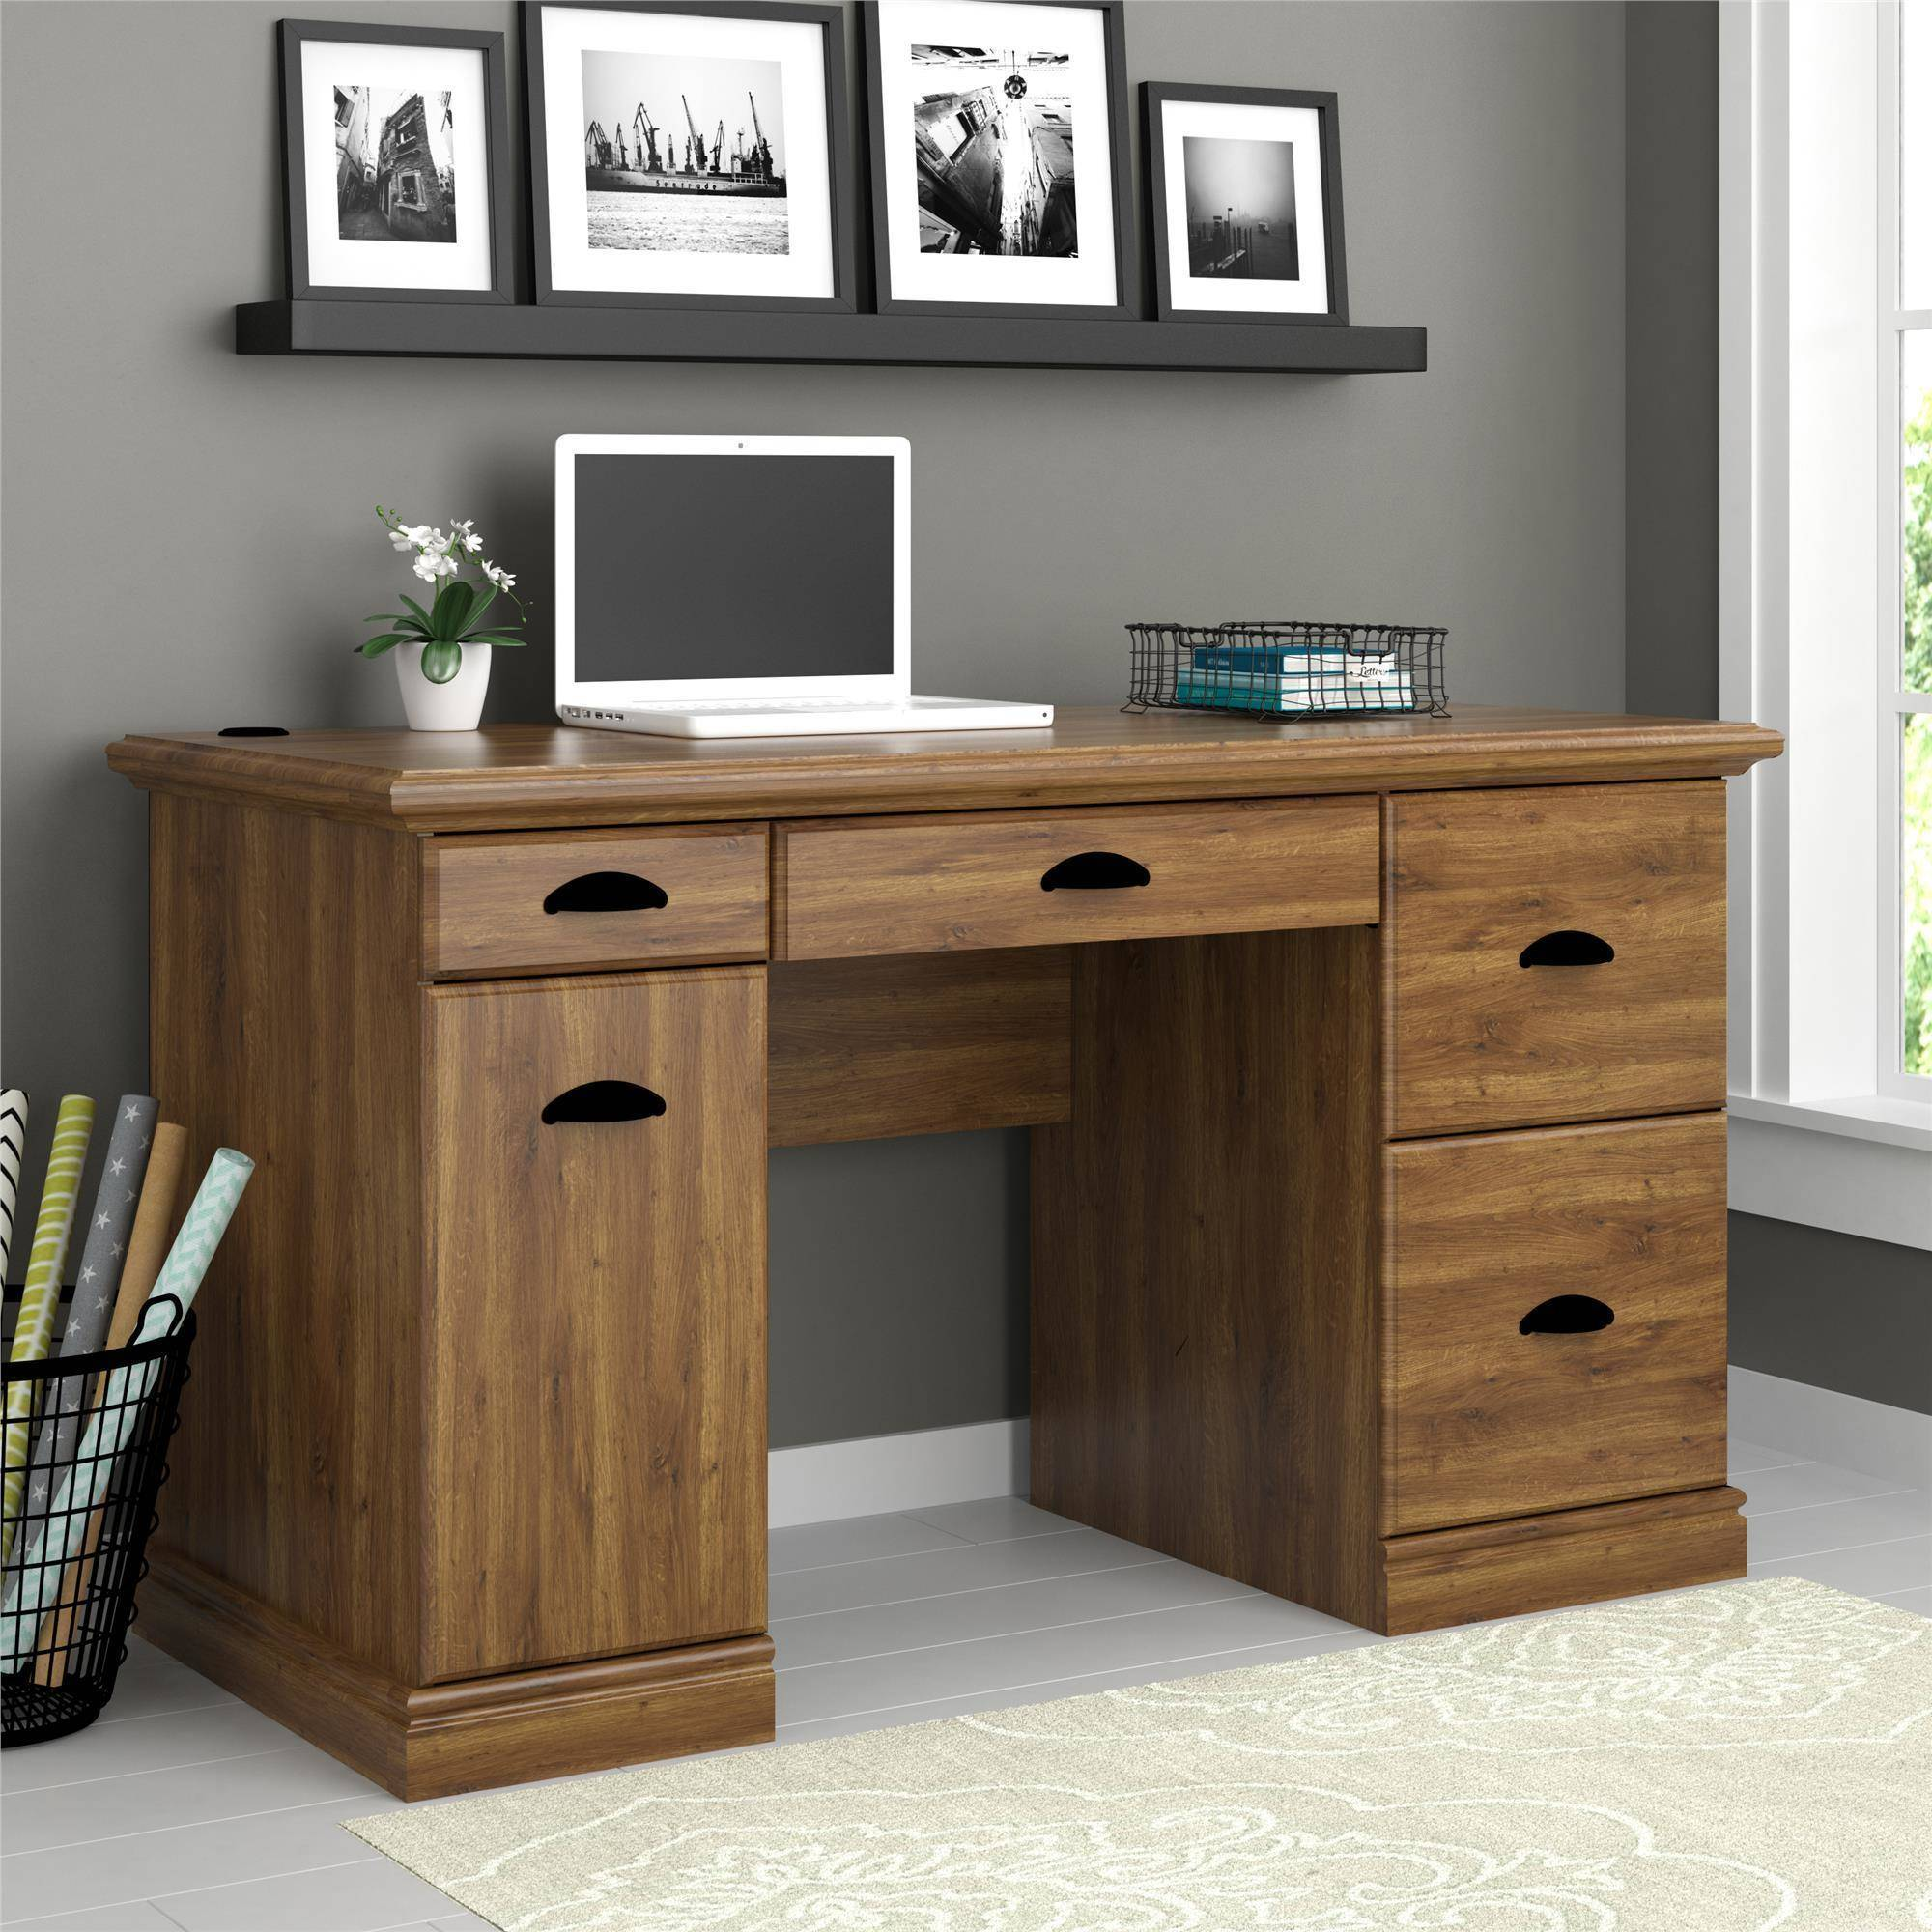 Walmart Home Office Desk. Walmart Home Office Desk H